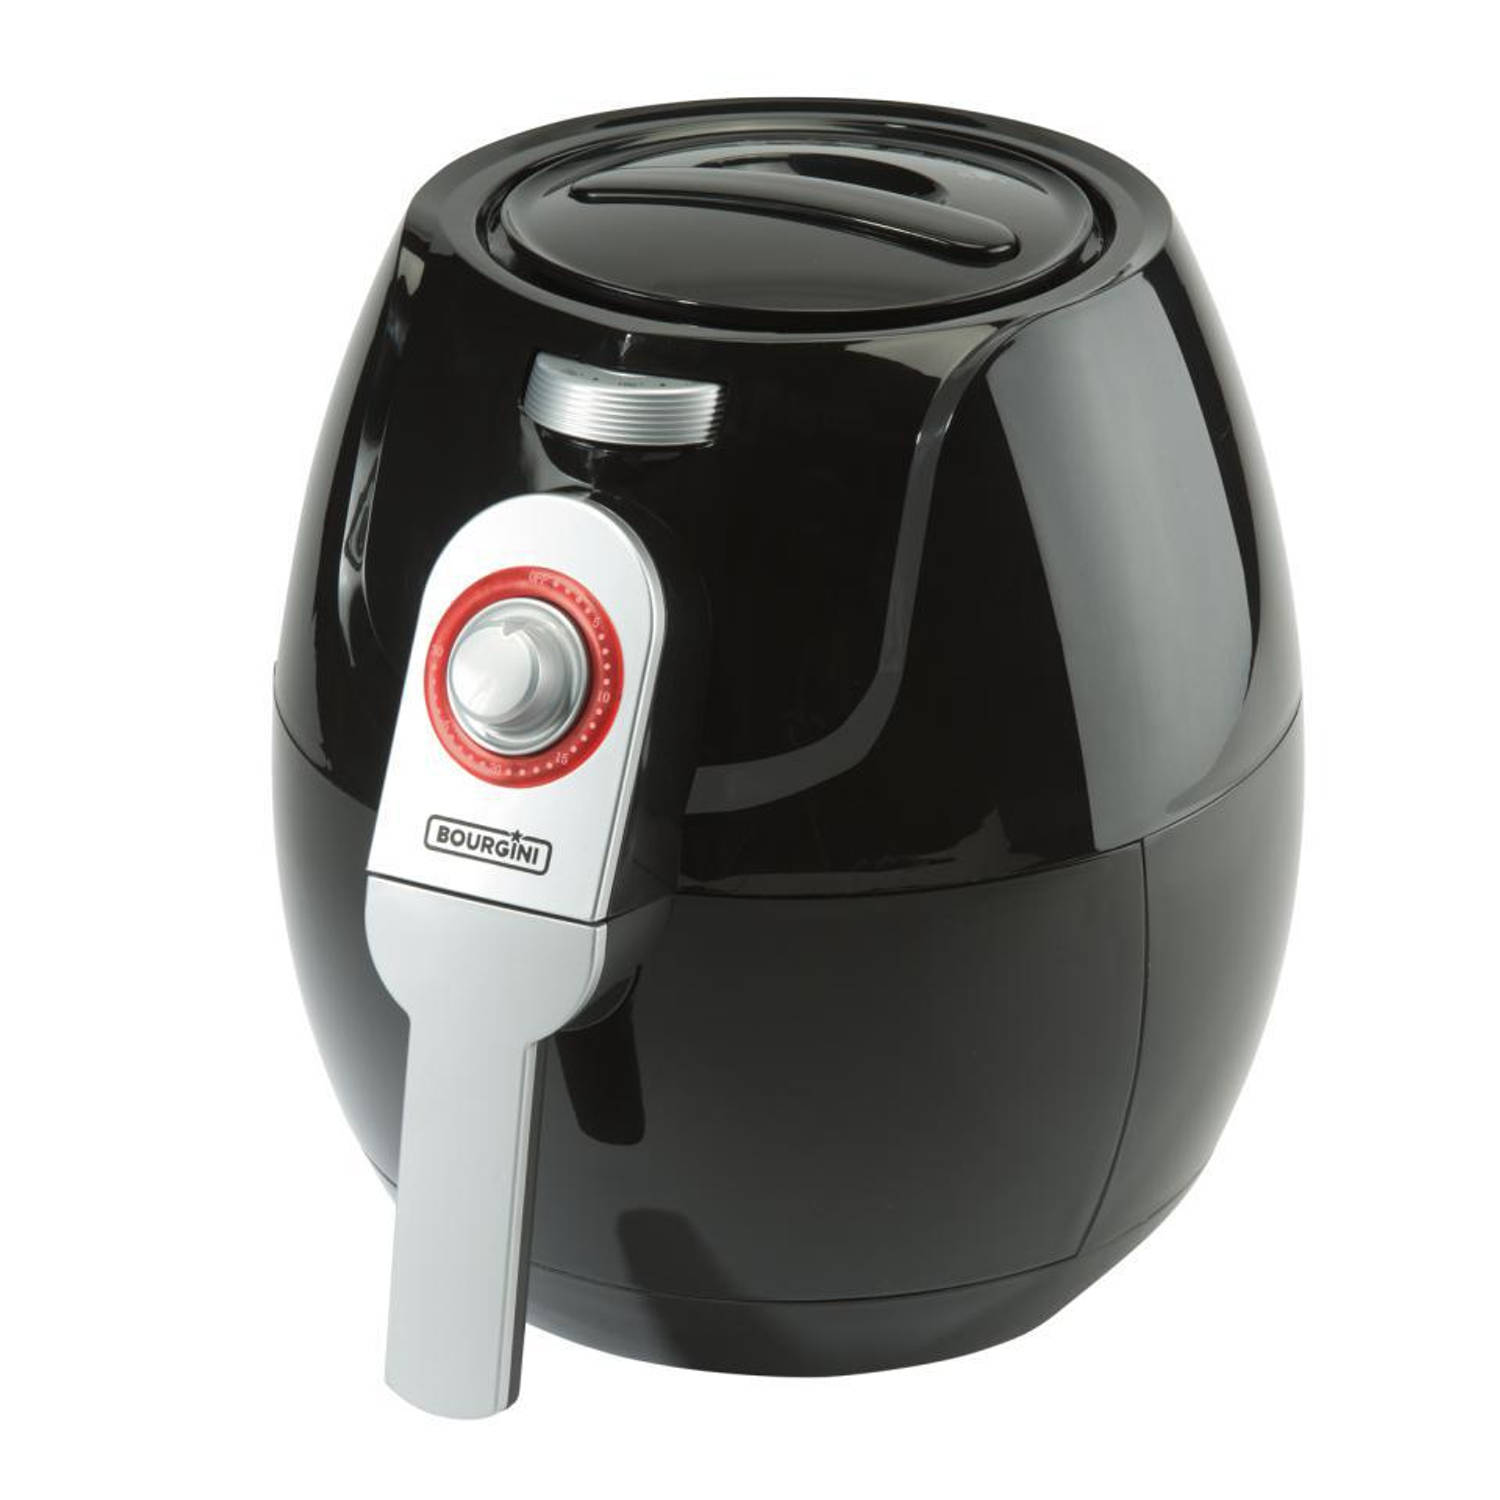 Bourgini Family Health Fryer 18.2042.00.00